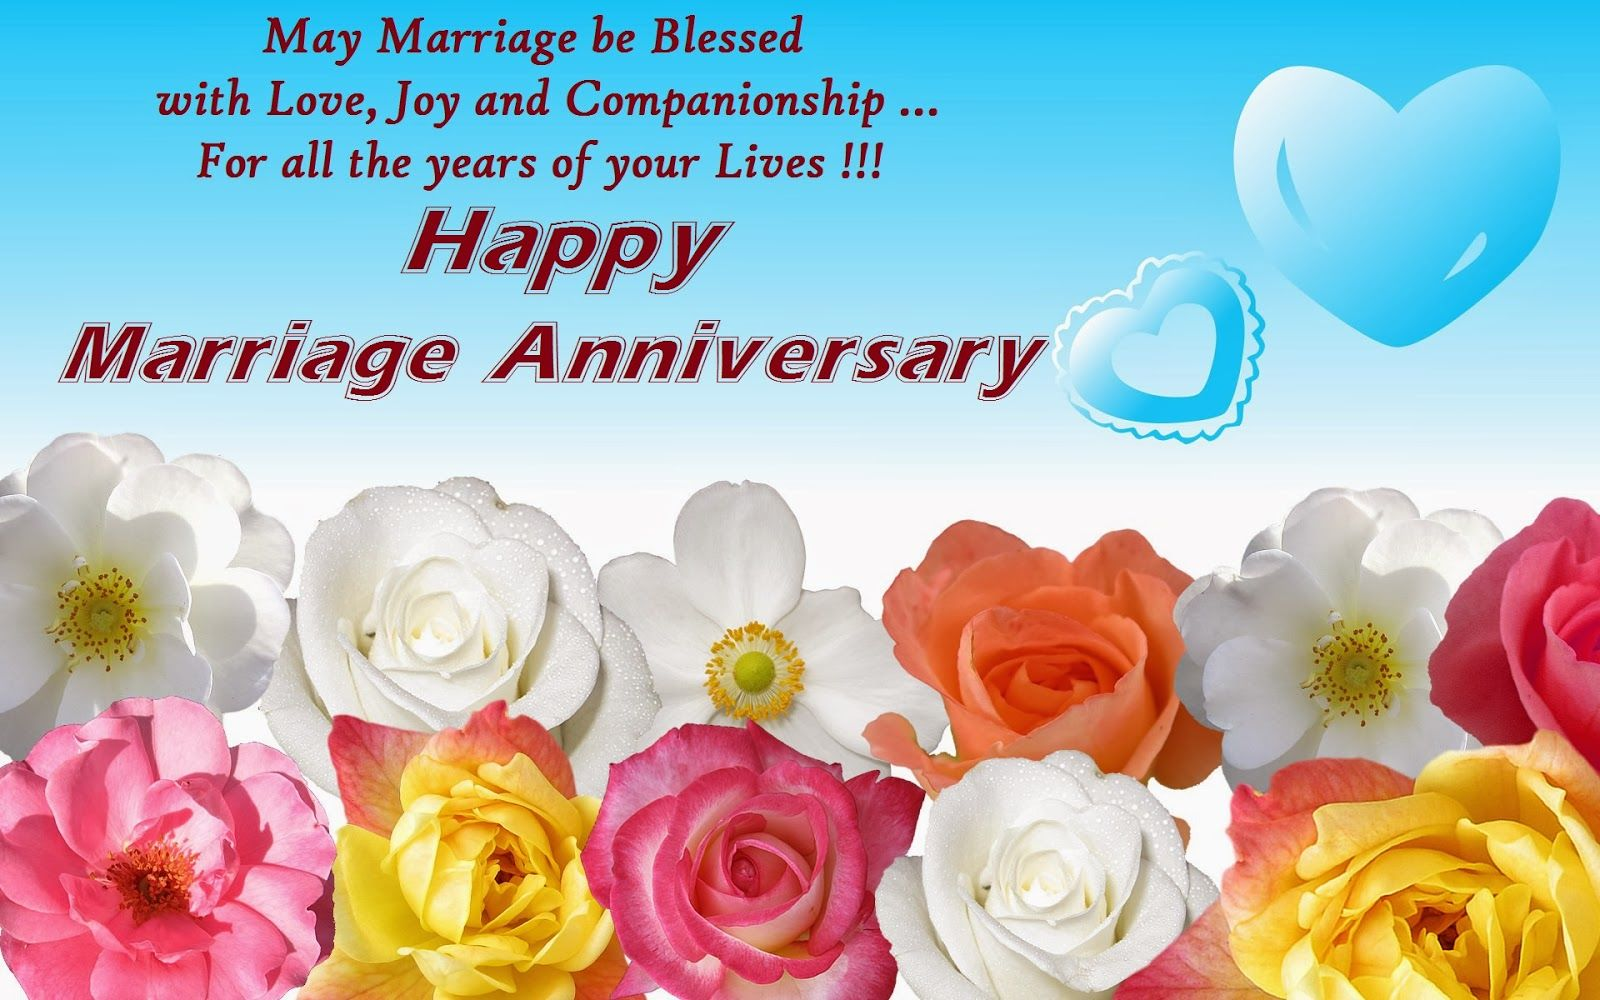 21 Best Images About Marriage Anniversary On Pinterest: Happy Marriage Anniversary Pictures, Photos, And Images